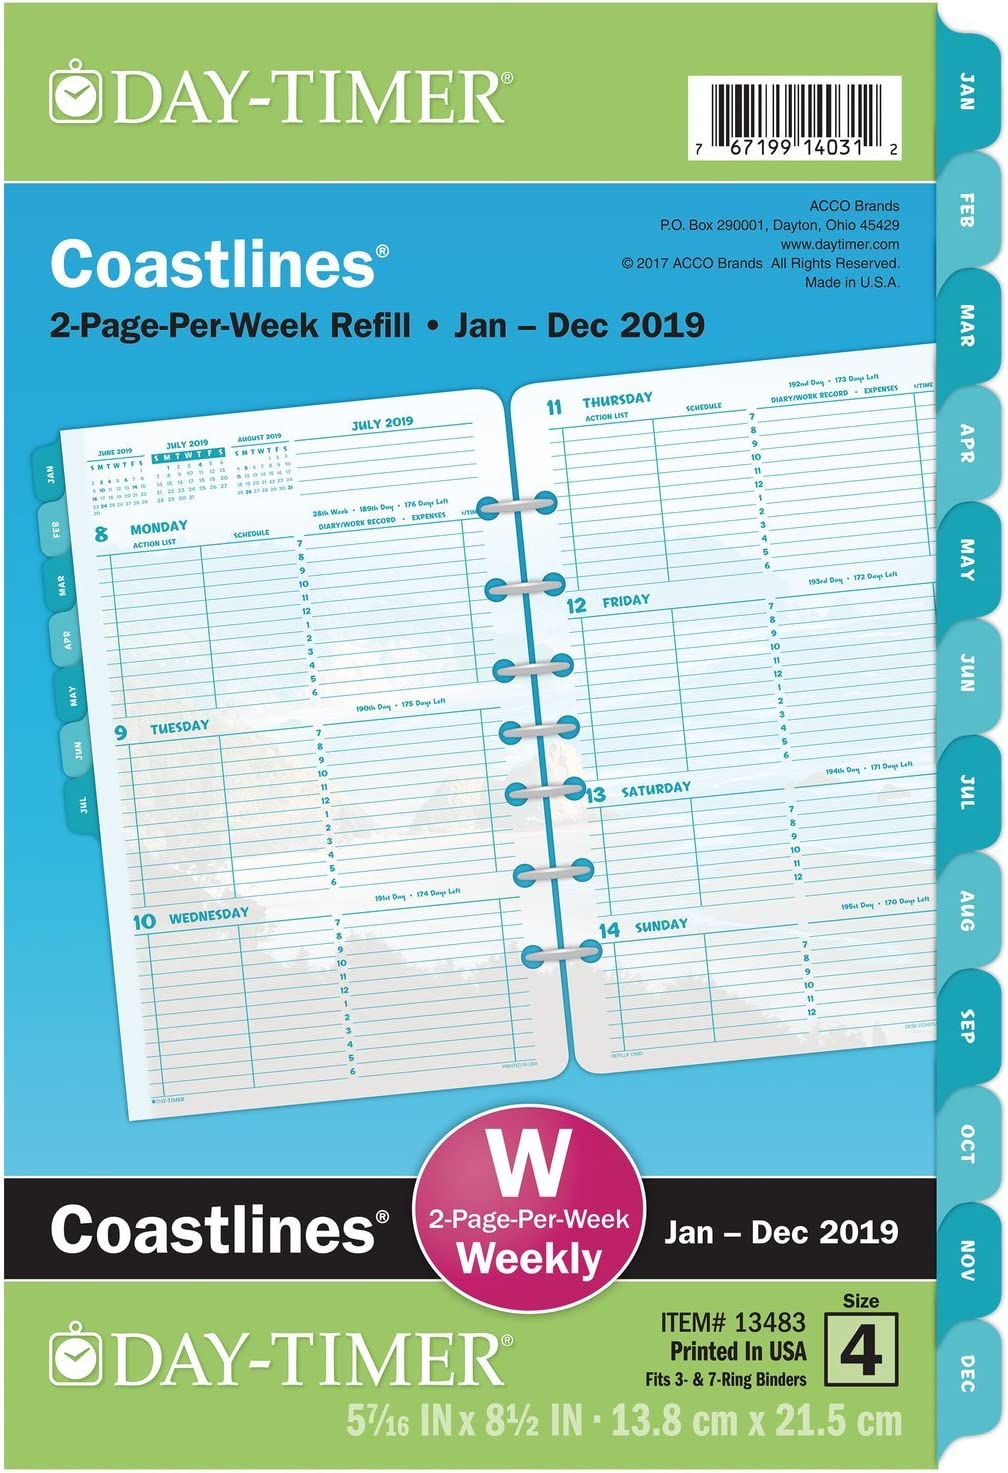 """Day-Timer 2019 Weekly Planner Refill, 5-1/2"""" x 8-1/2"""", Desk Size 4, Two Pages Per Week, Loose Leaf, Coastlines (13483)"""